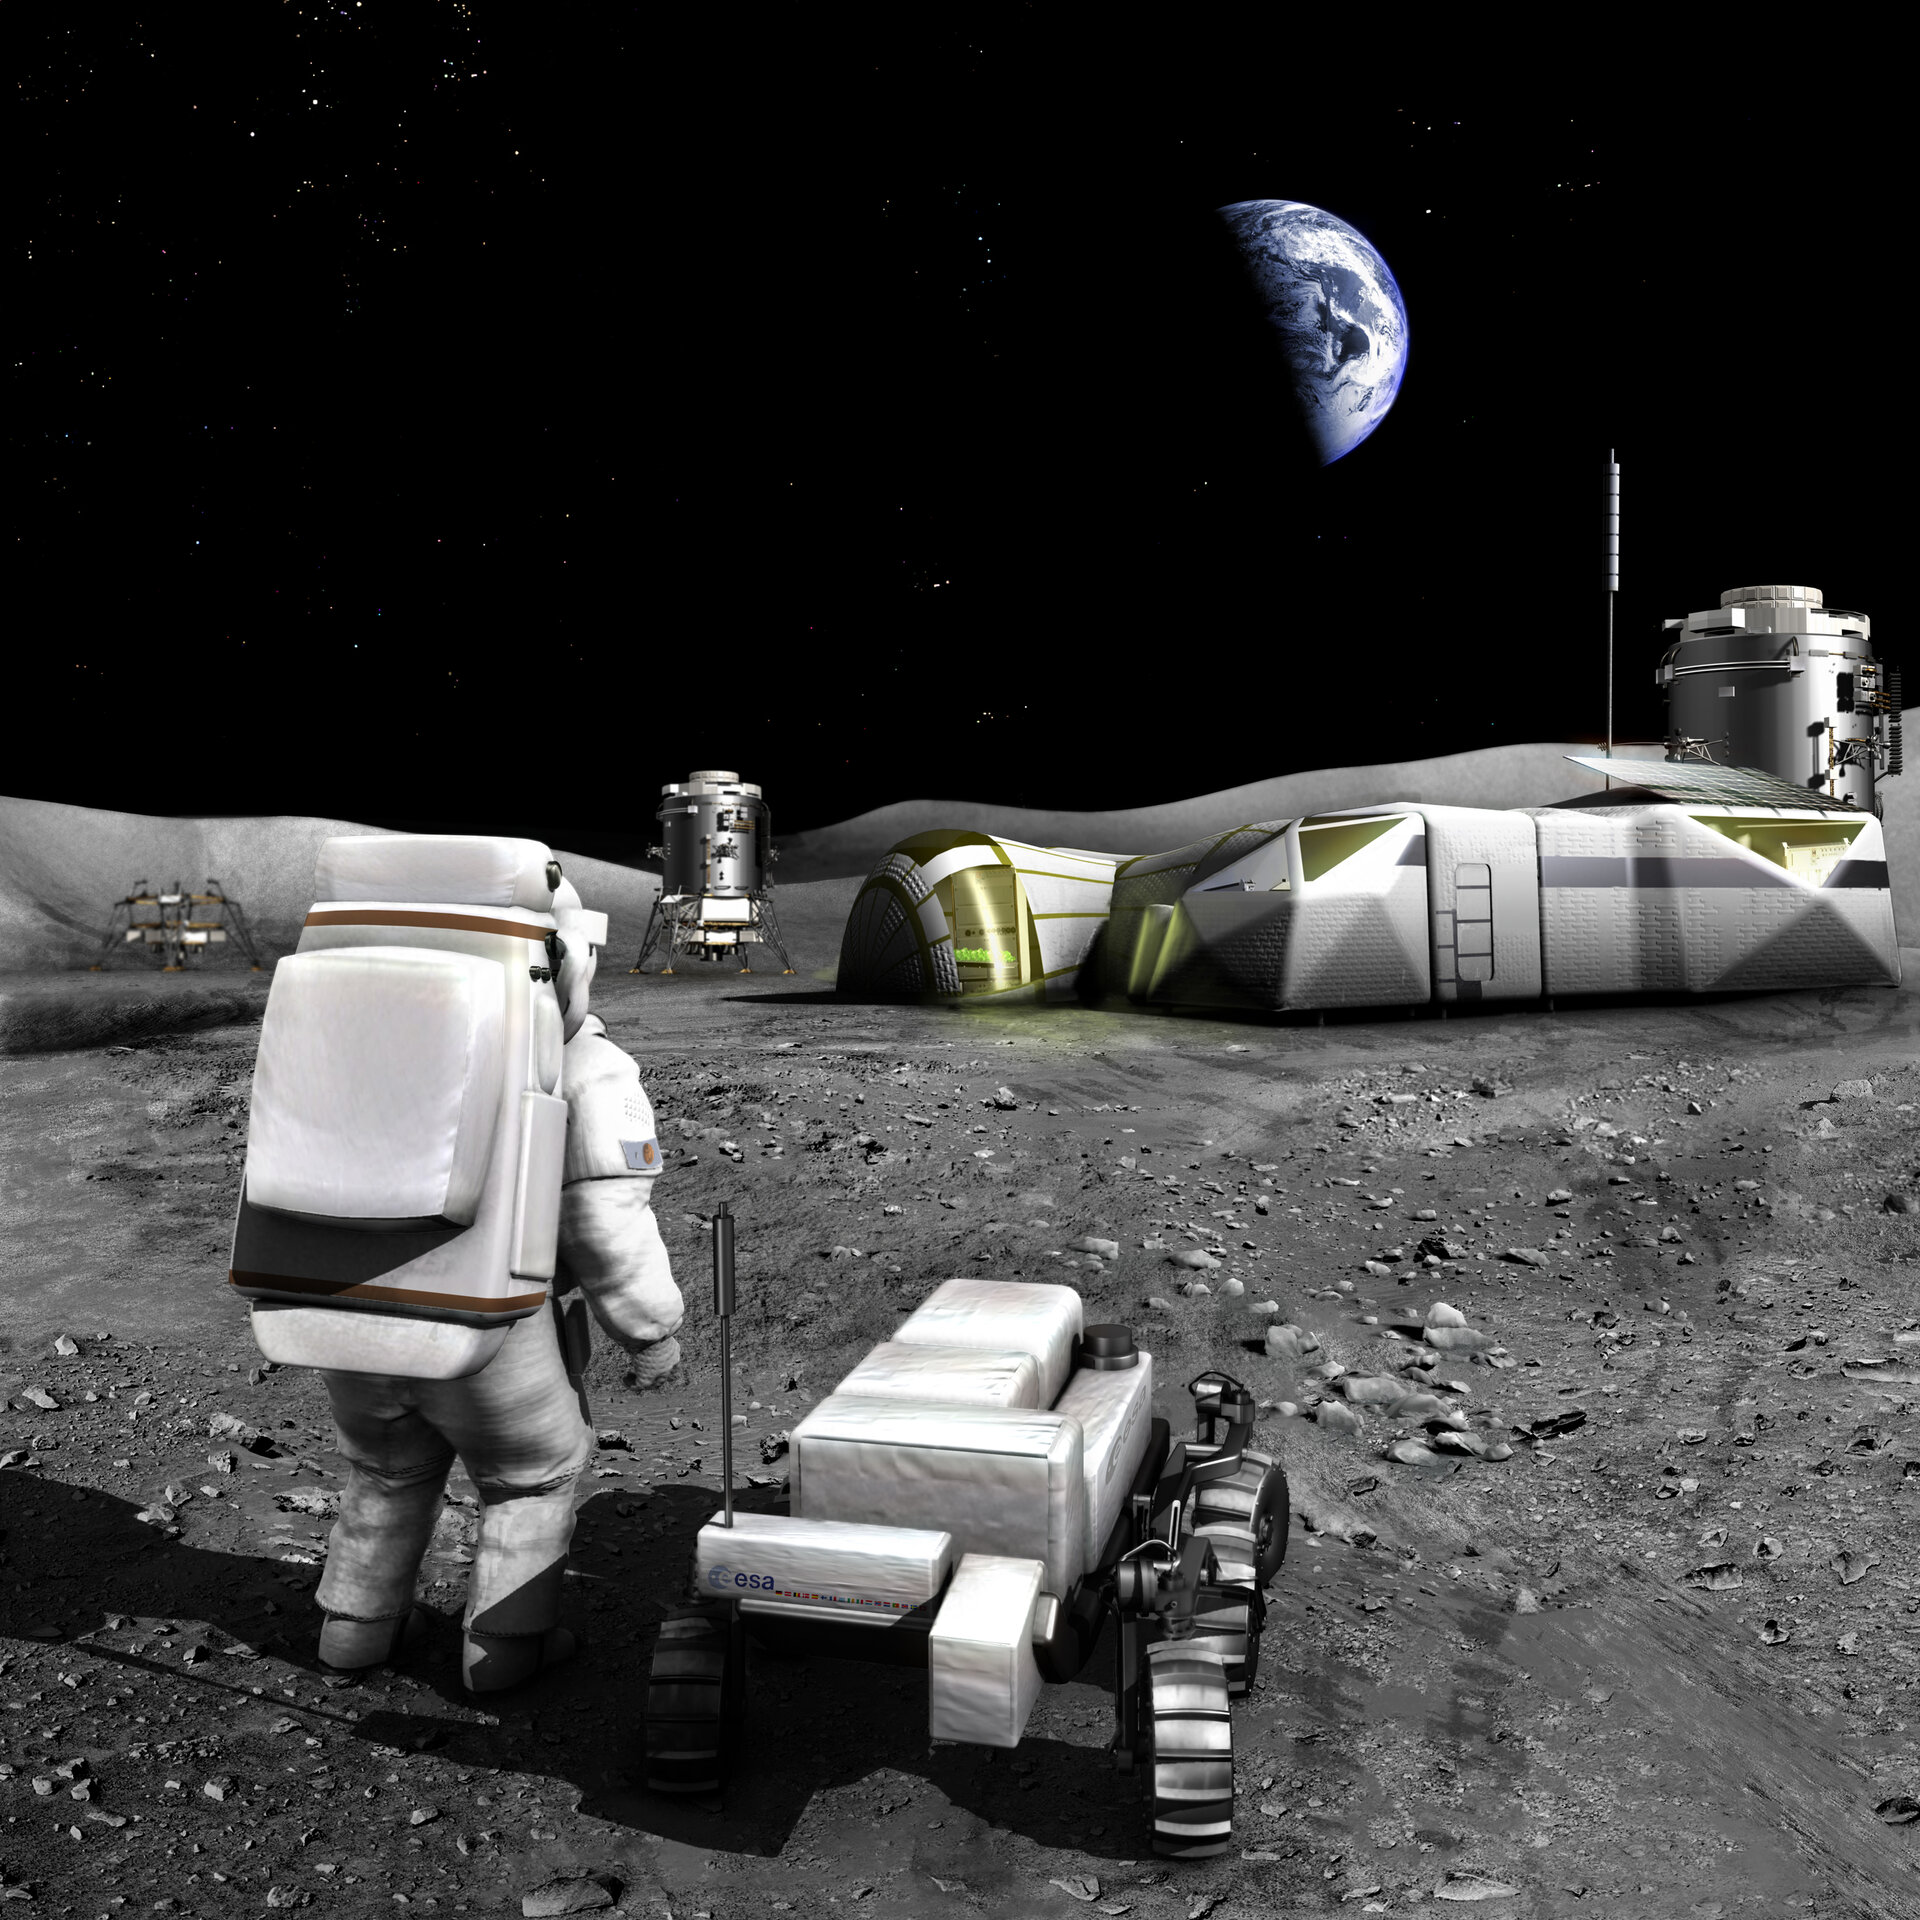 Moon base – artist's view